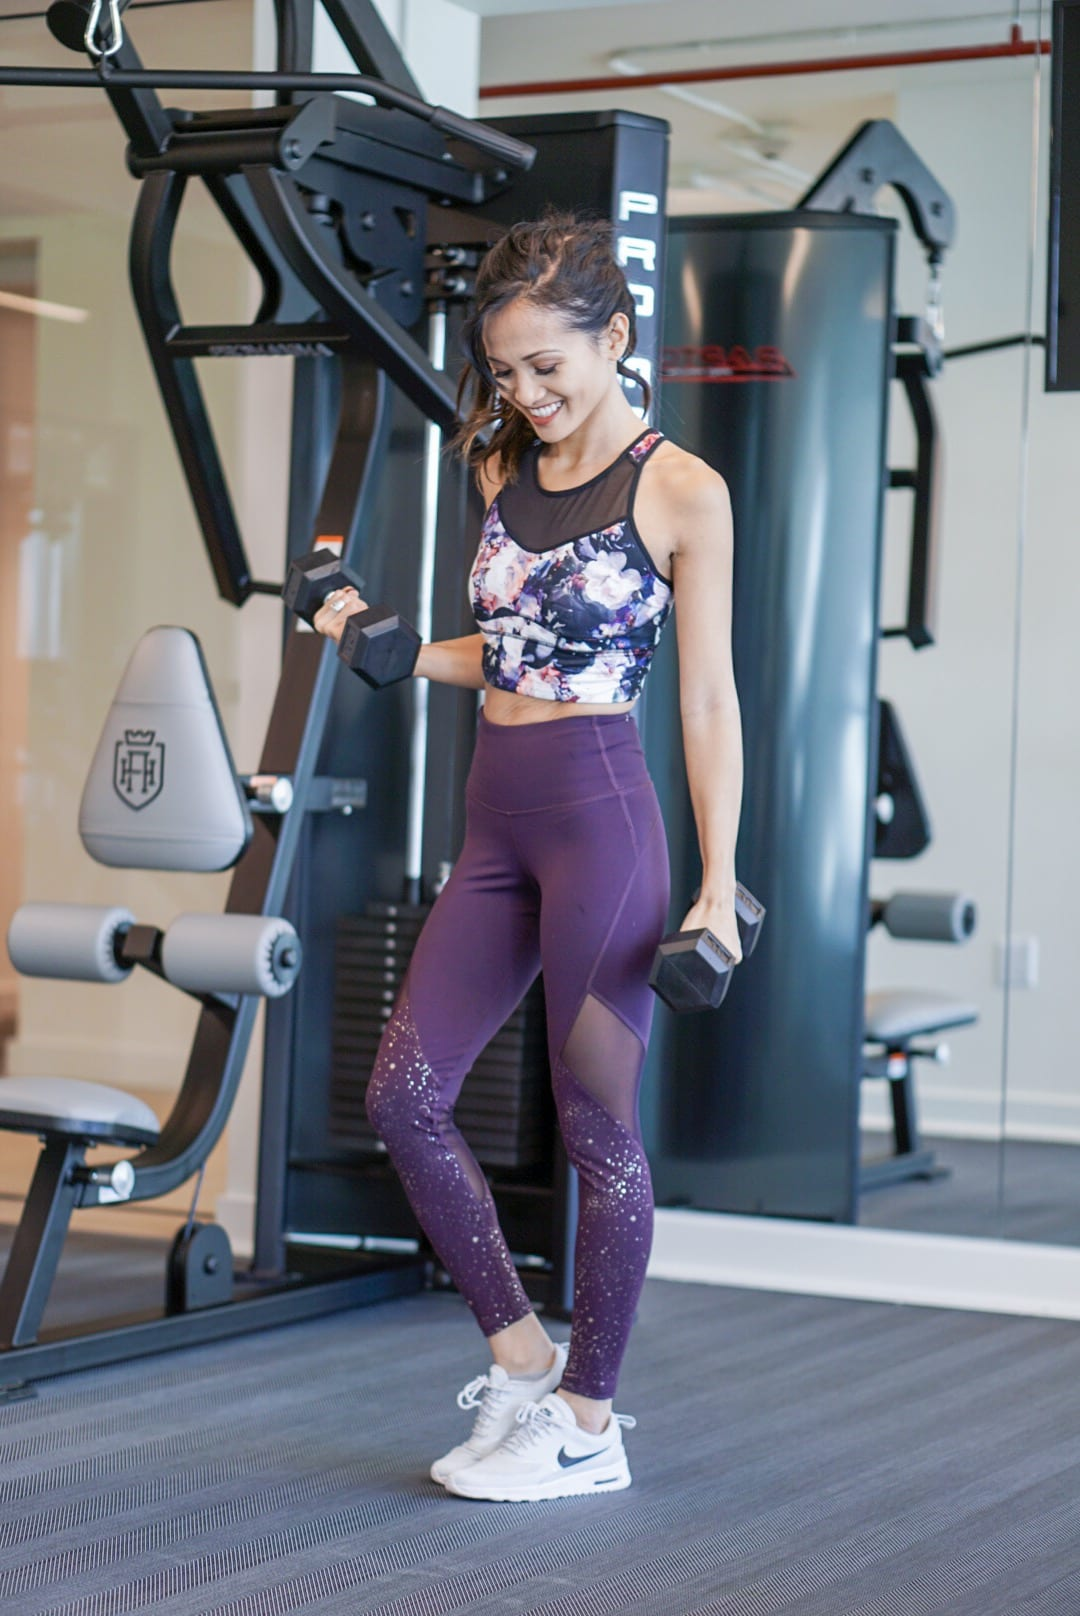 printed workout leggings, fitness fashion, activewear, gym clothes, activewear style, activewear outfits, floral leggings, printed leggings, workout clothes, under $50 style, mom on a budget